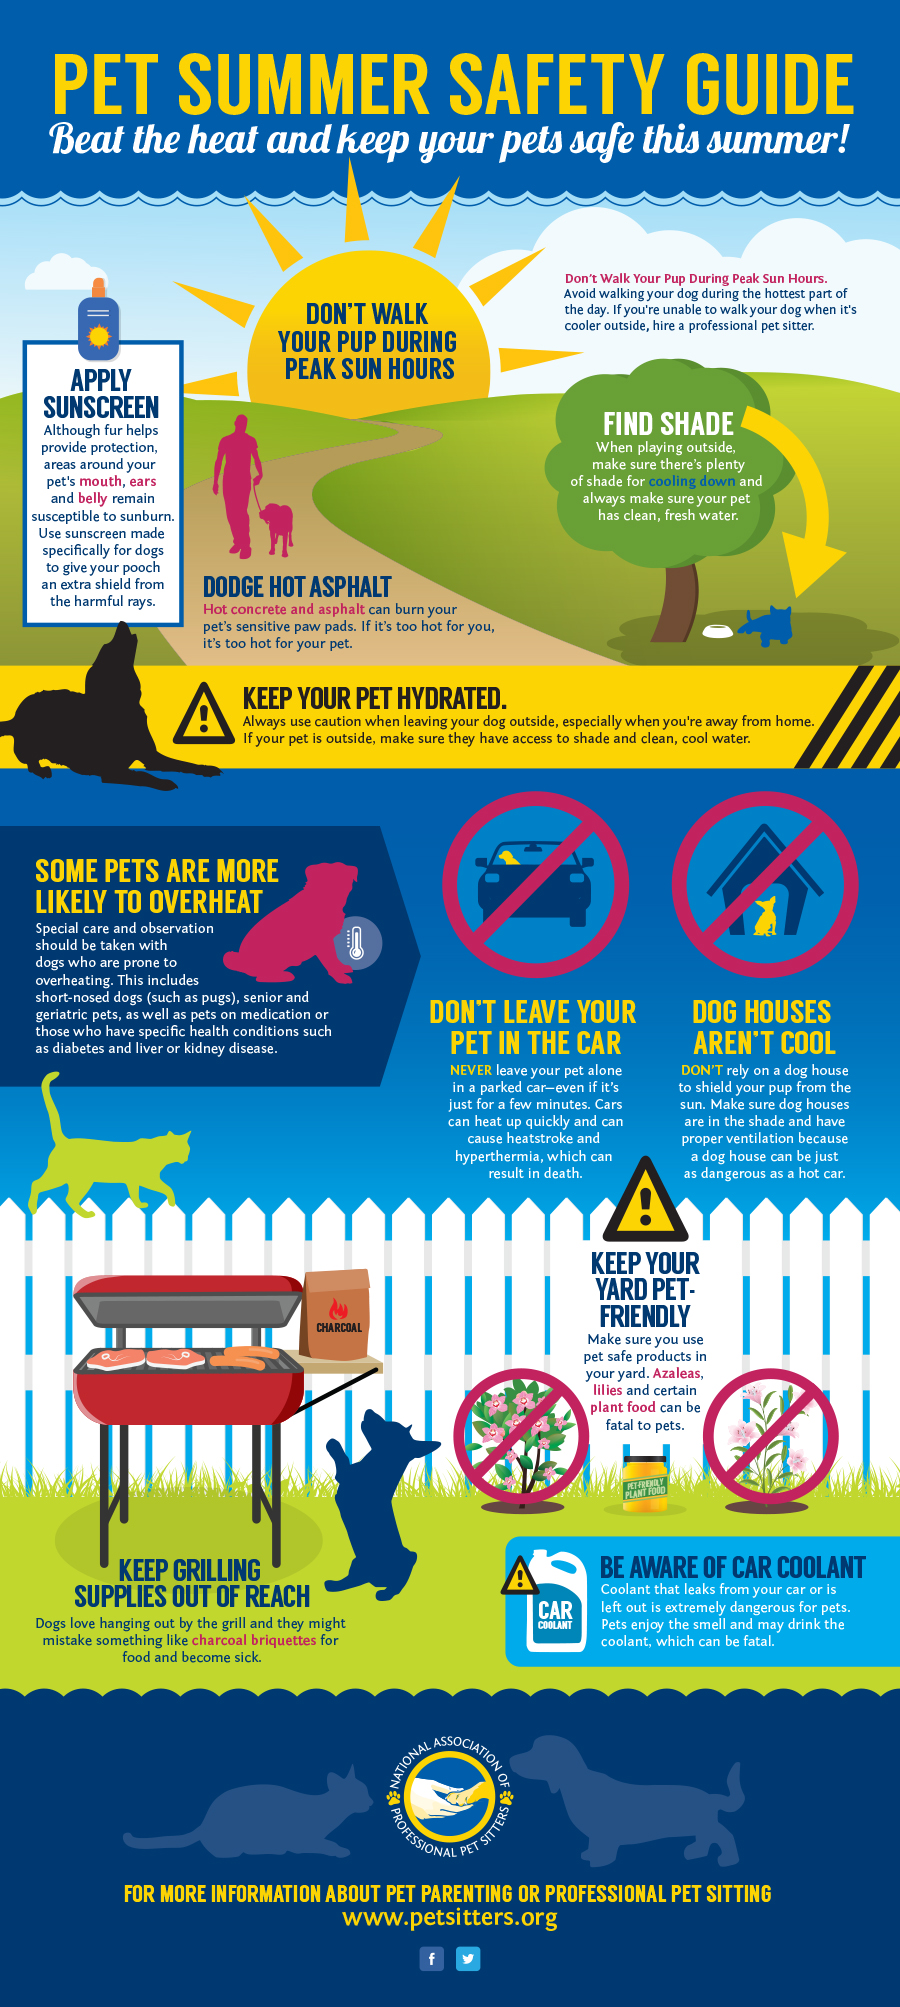 NAPPS-15-SummerSafety-Infographic-Final